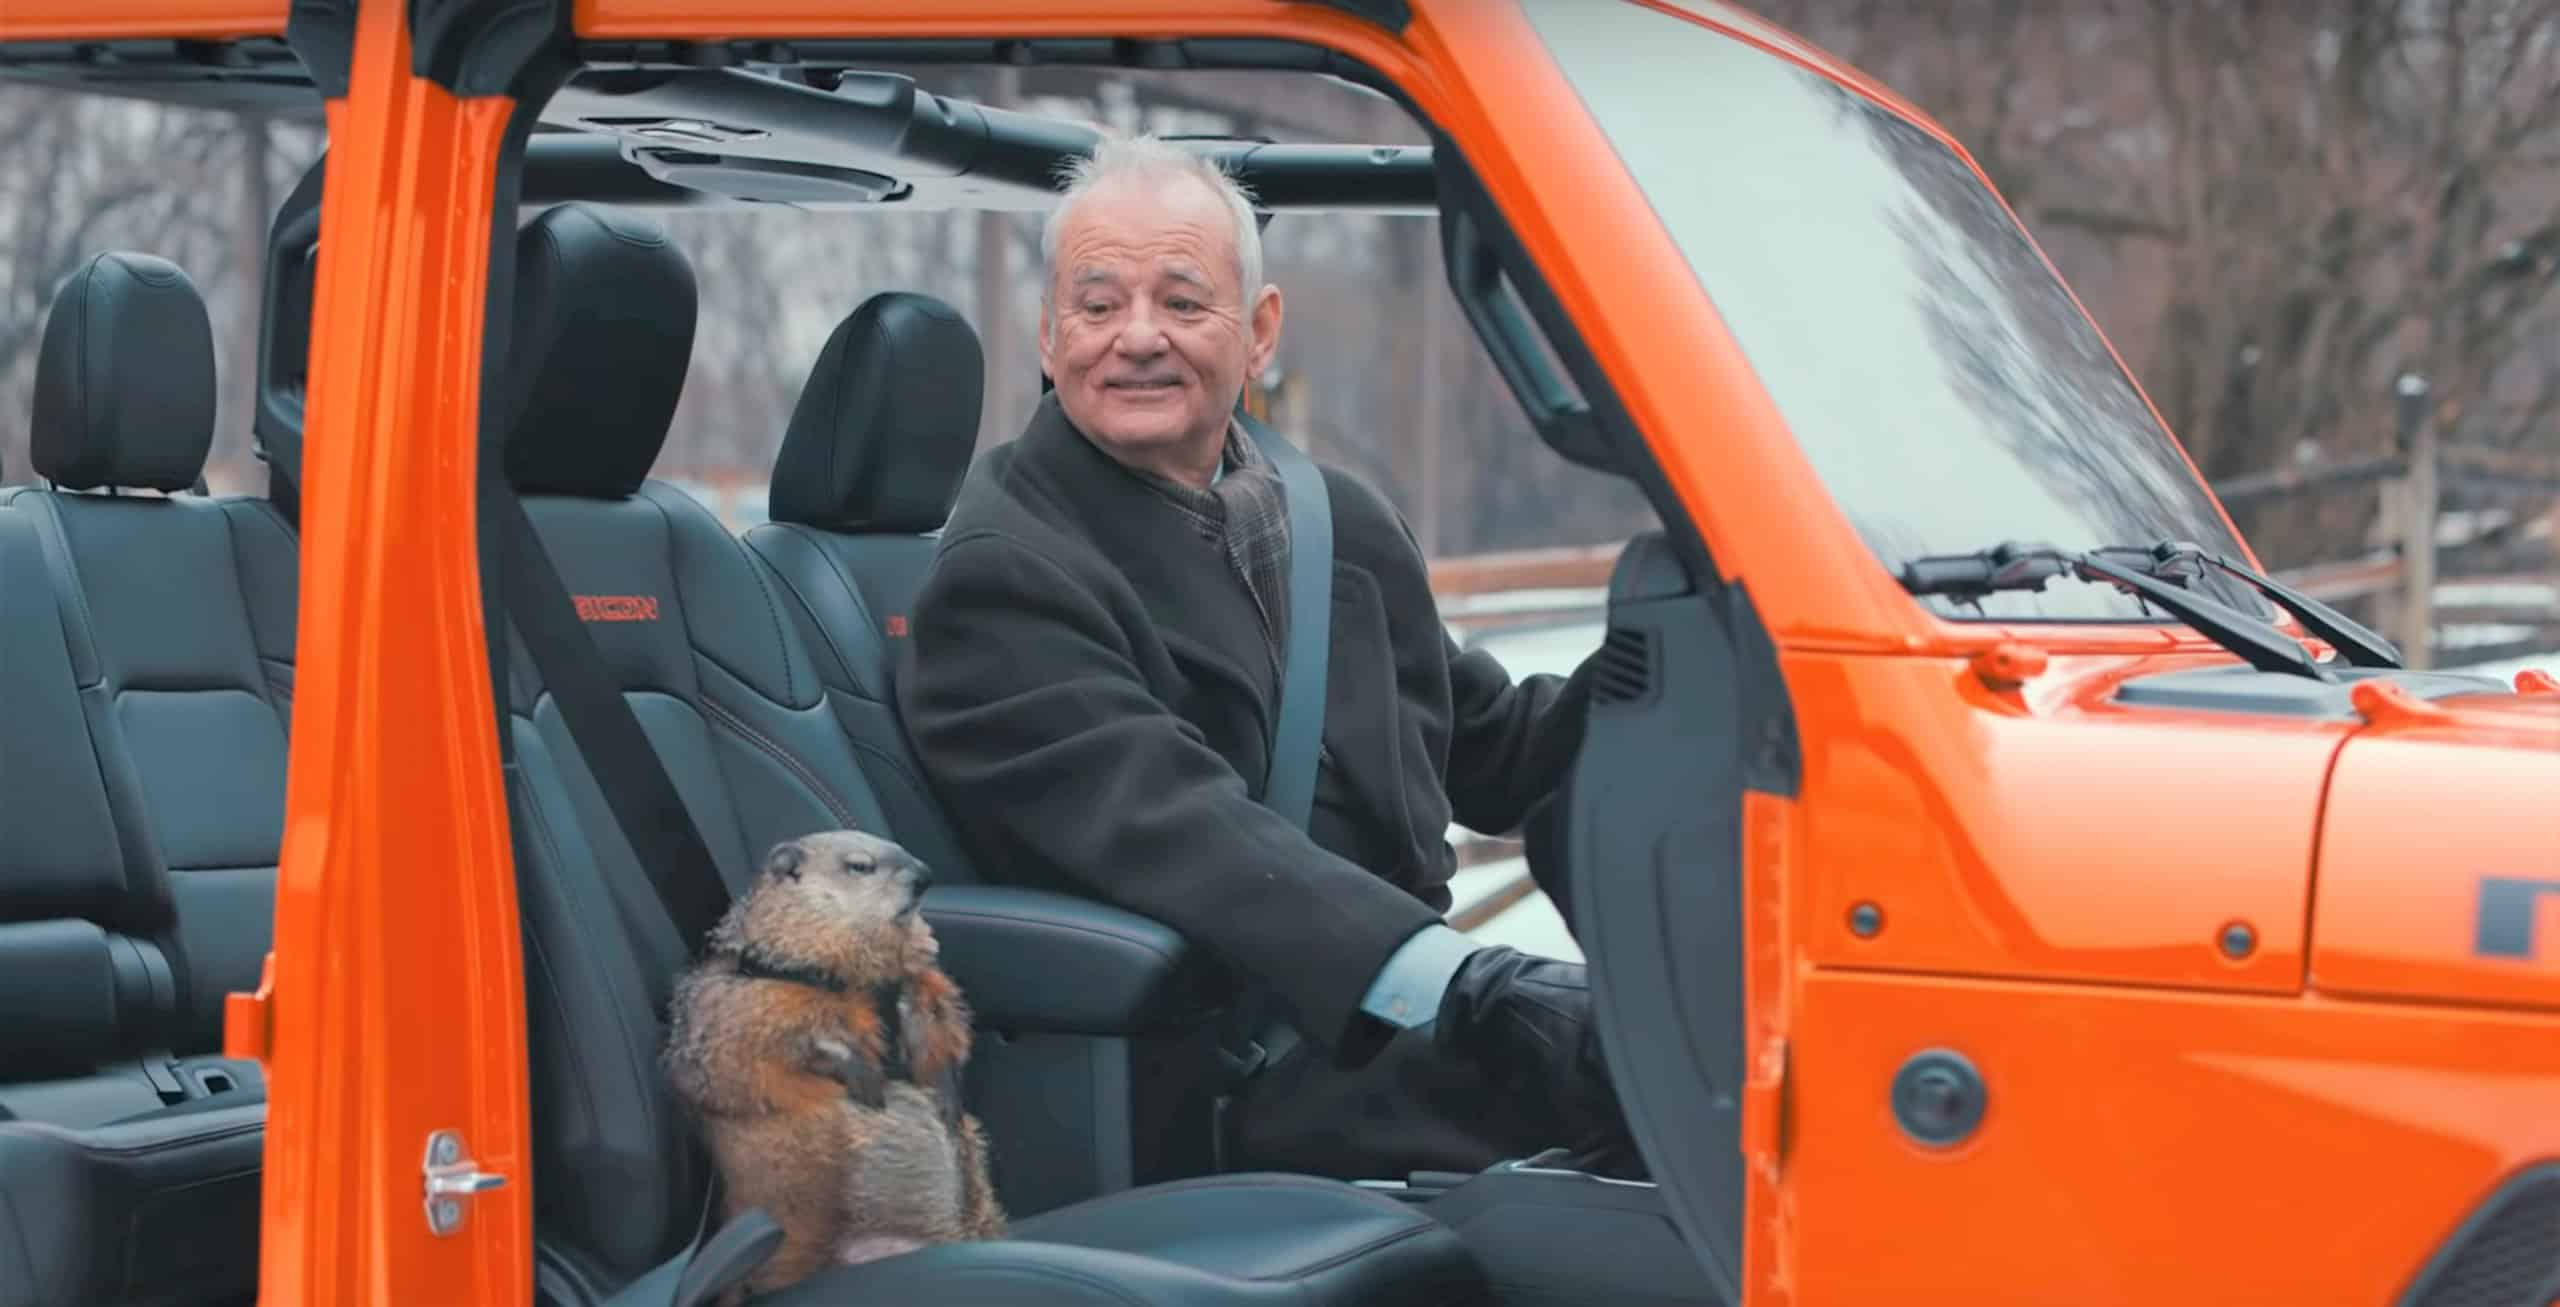 Jeep's 2020 Super Bowl commercial featuring Bill Murray